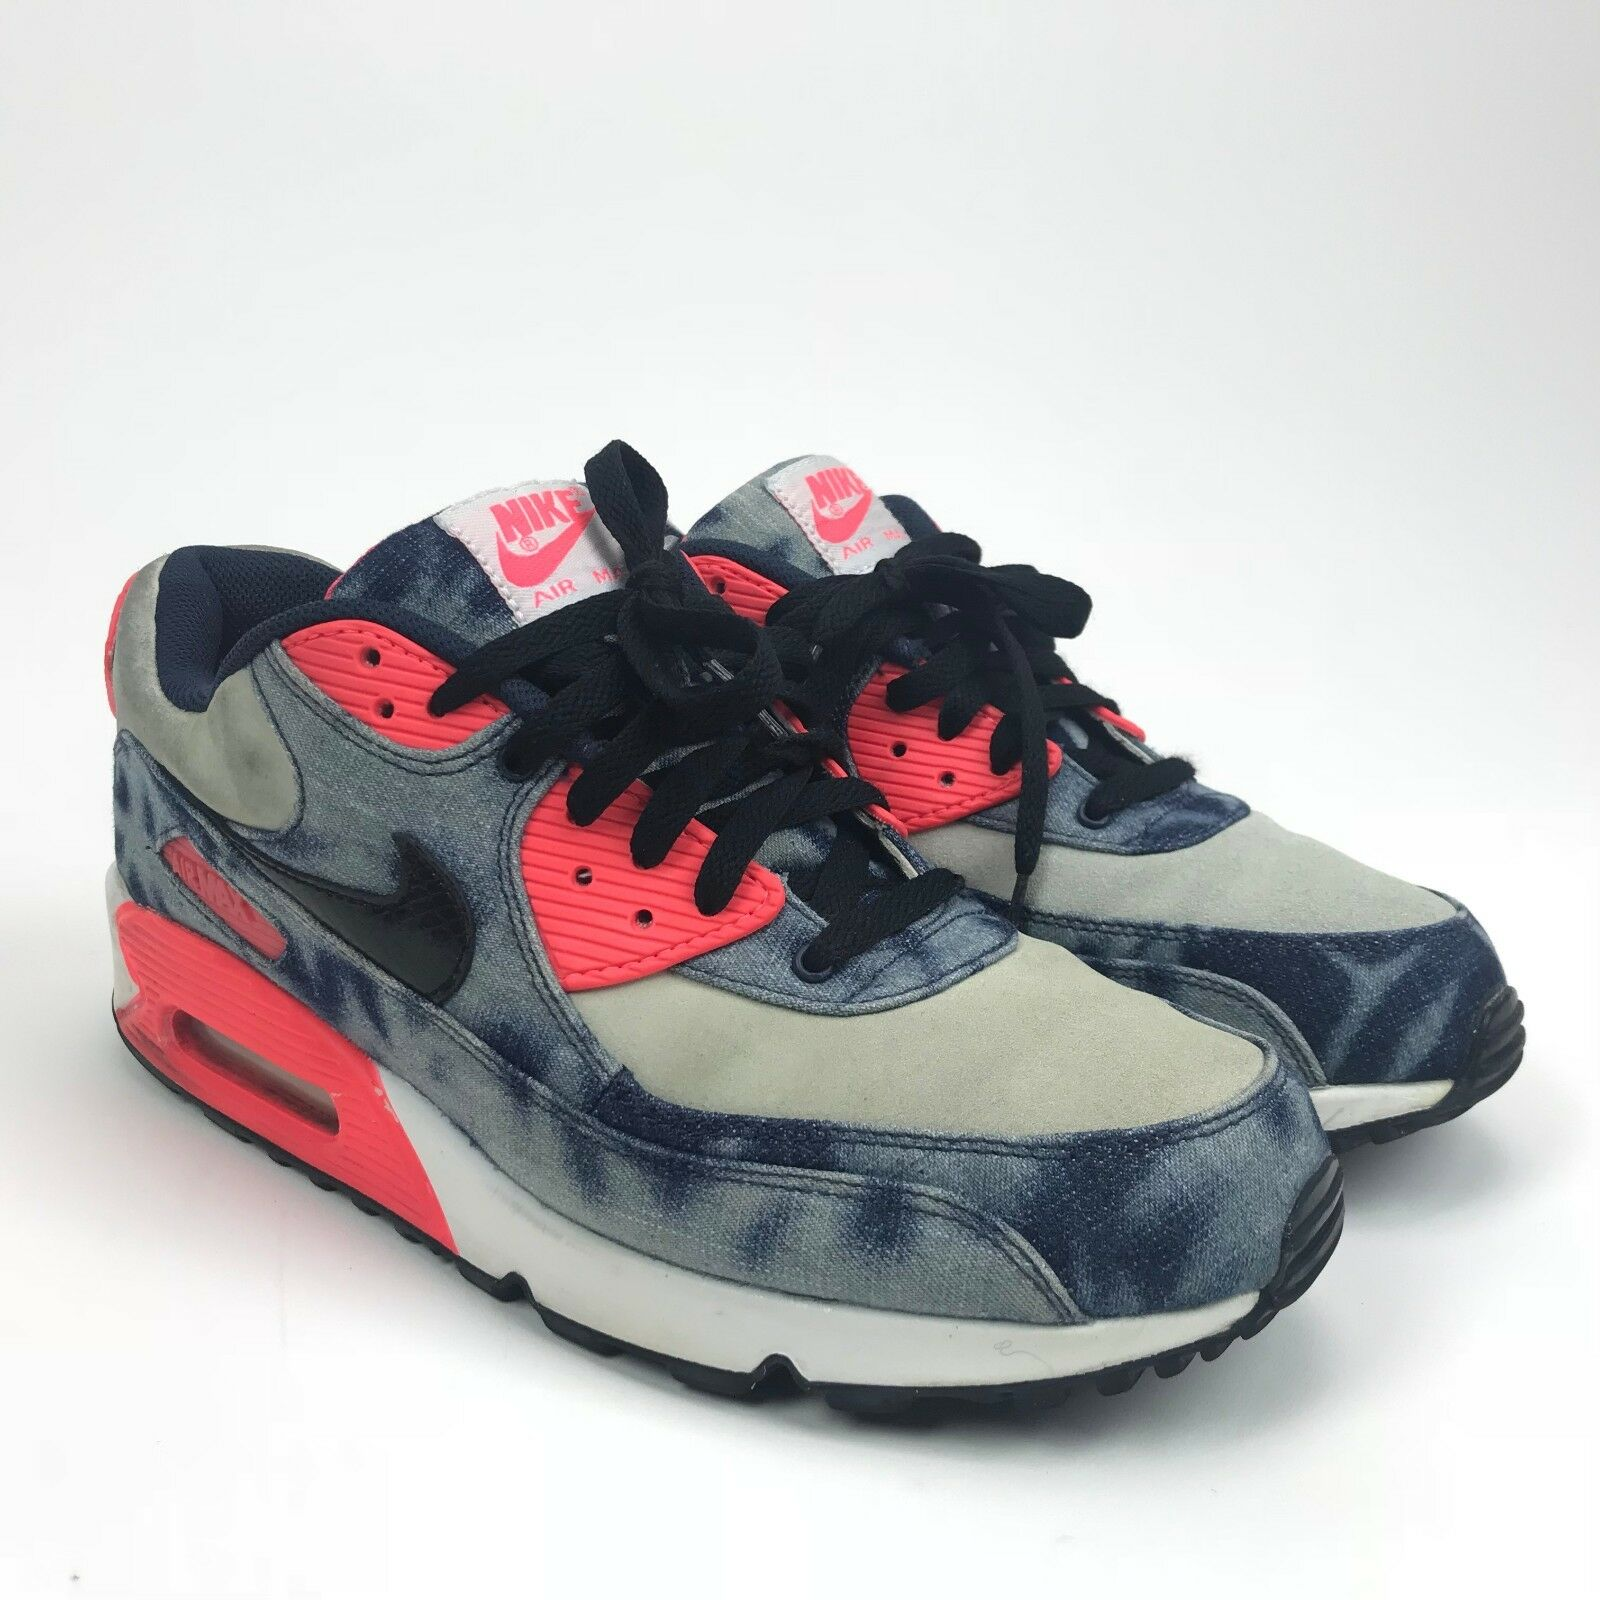 2014 Nike Air Max 90 x Atmos QS  Bleached Denim  Infrared SZ 9.5